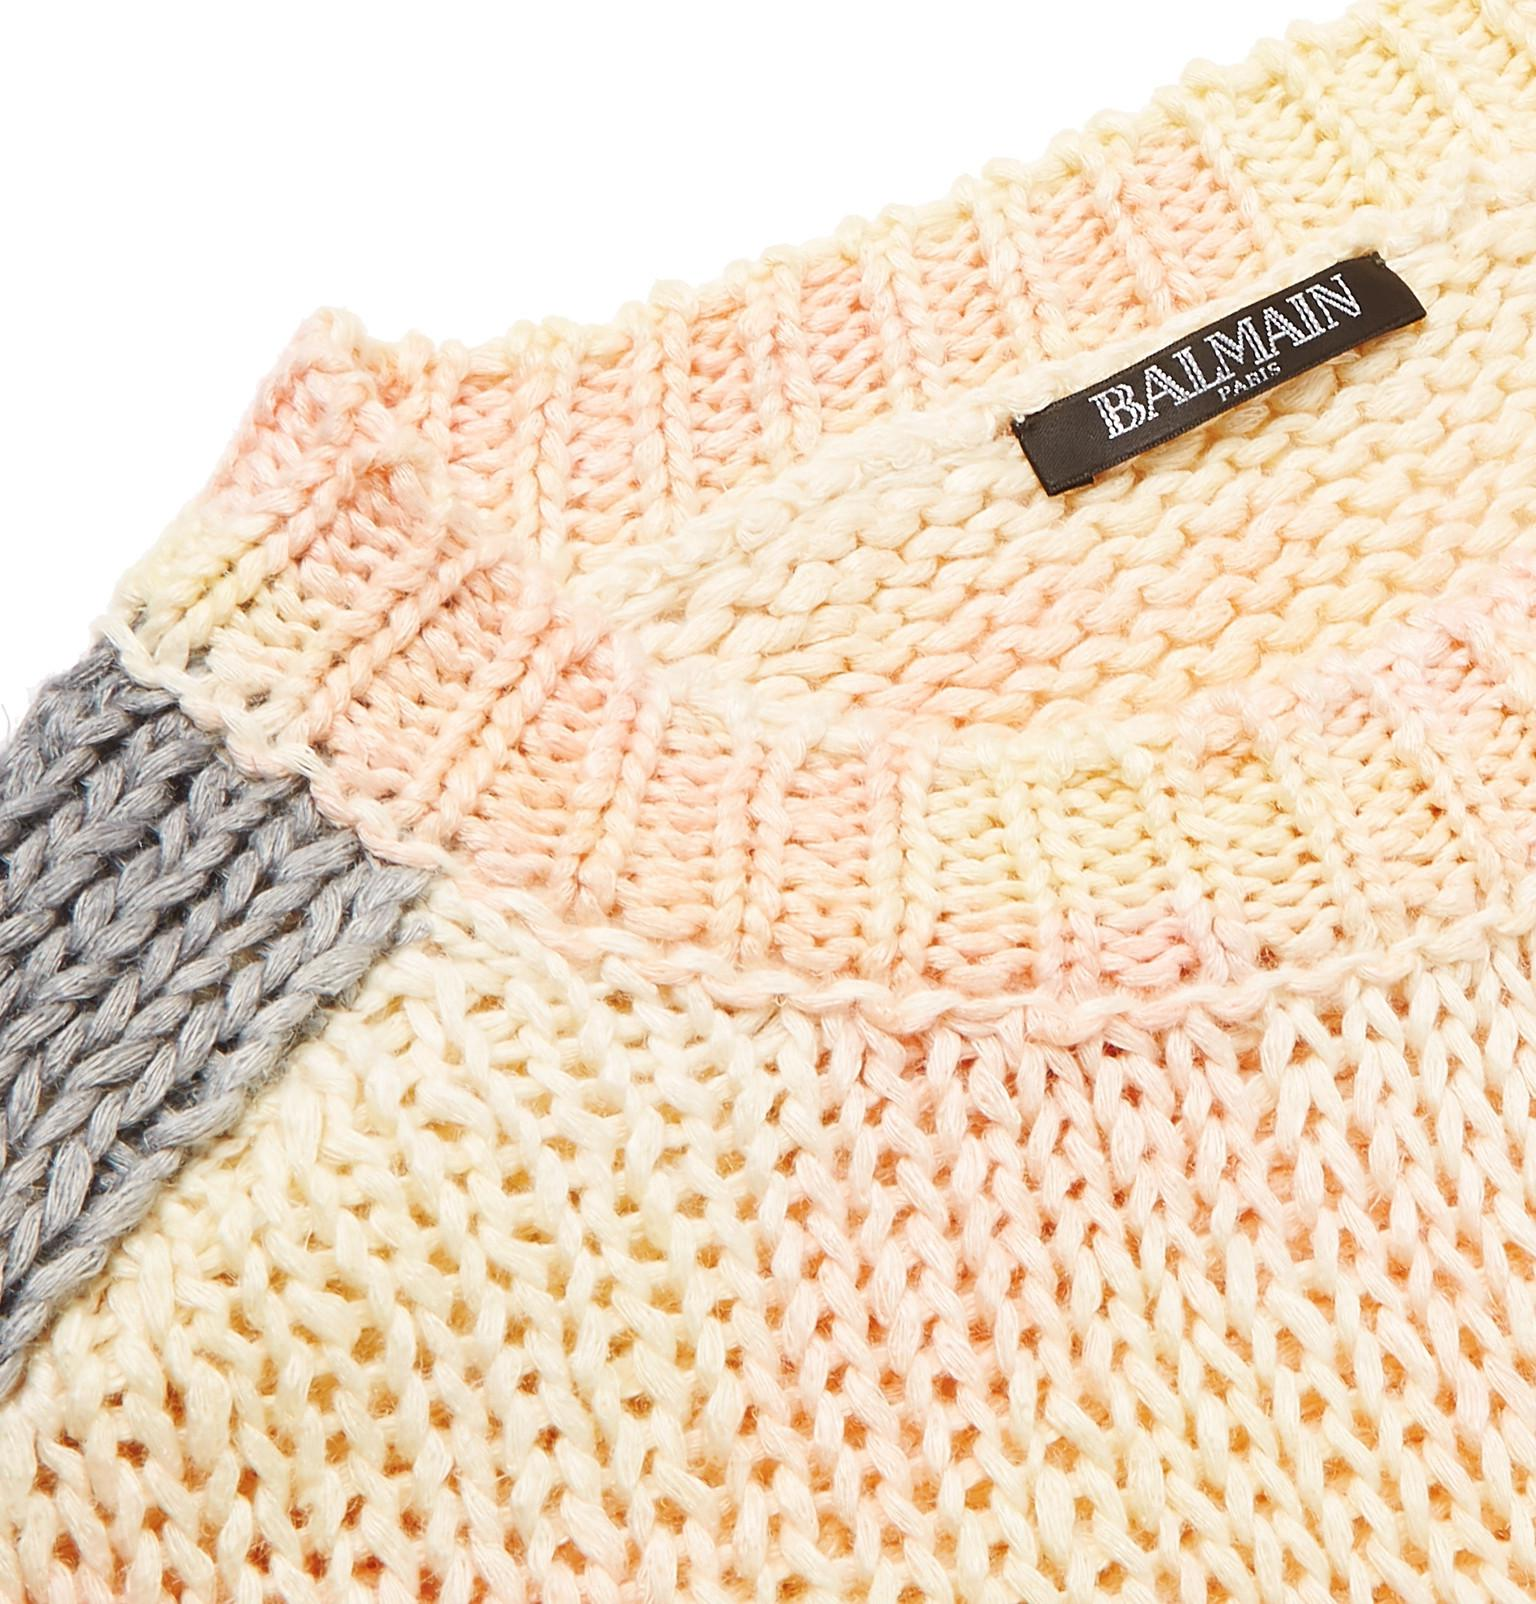 Sweater Silk View Fullscreen Blend And Fit Linen For Slim Dyed Balmain White Tie qzx7TX